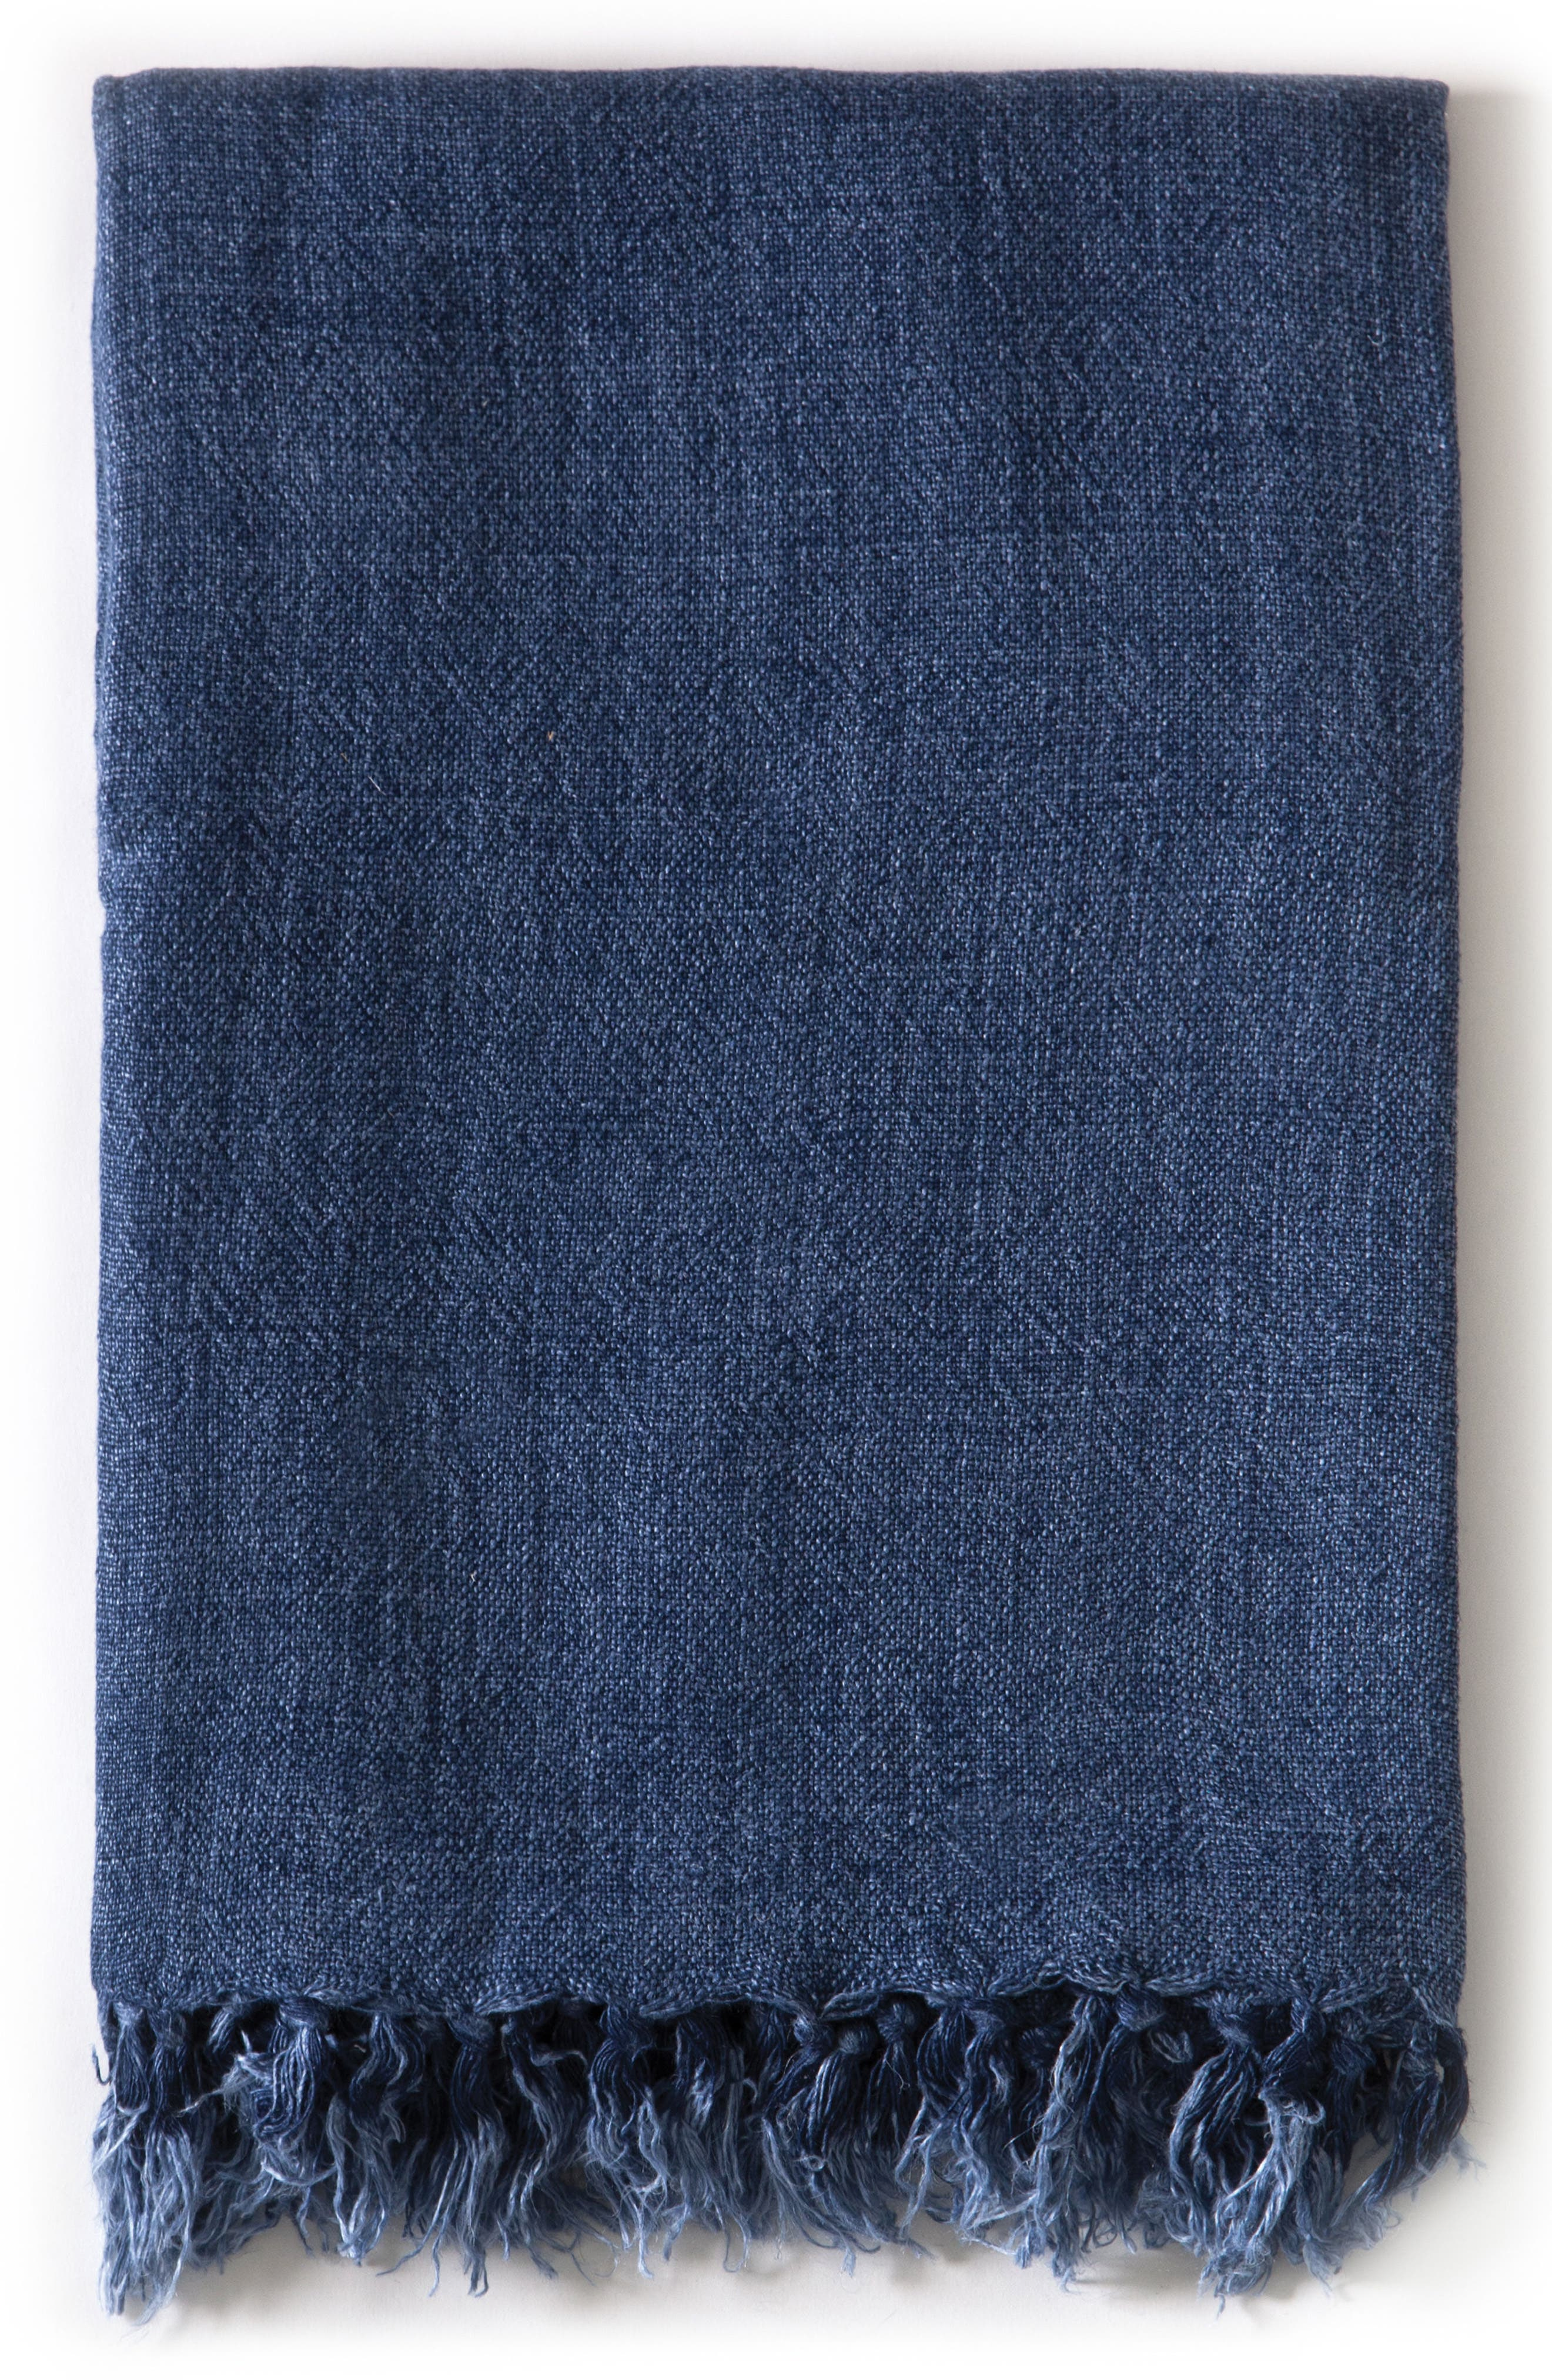 Pom Pom at Home Montauk Throw Blanket